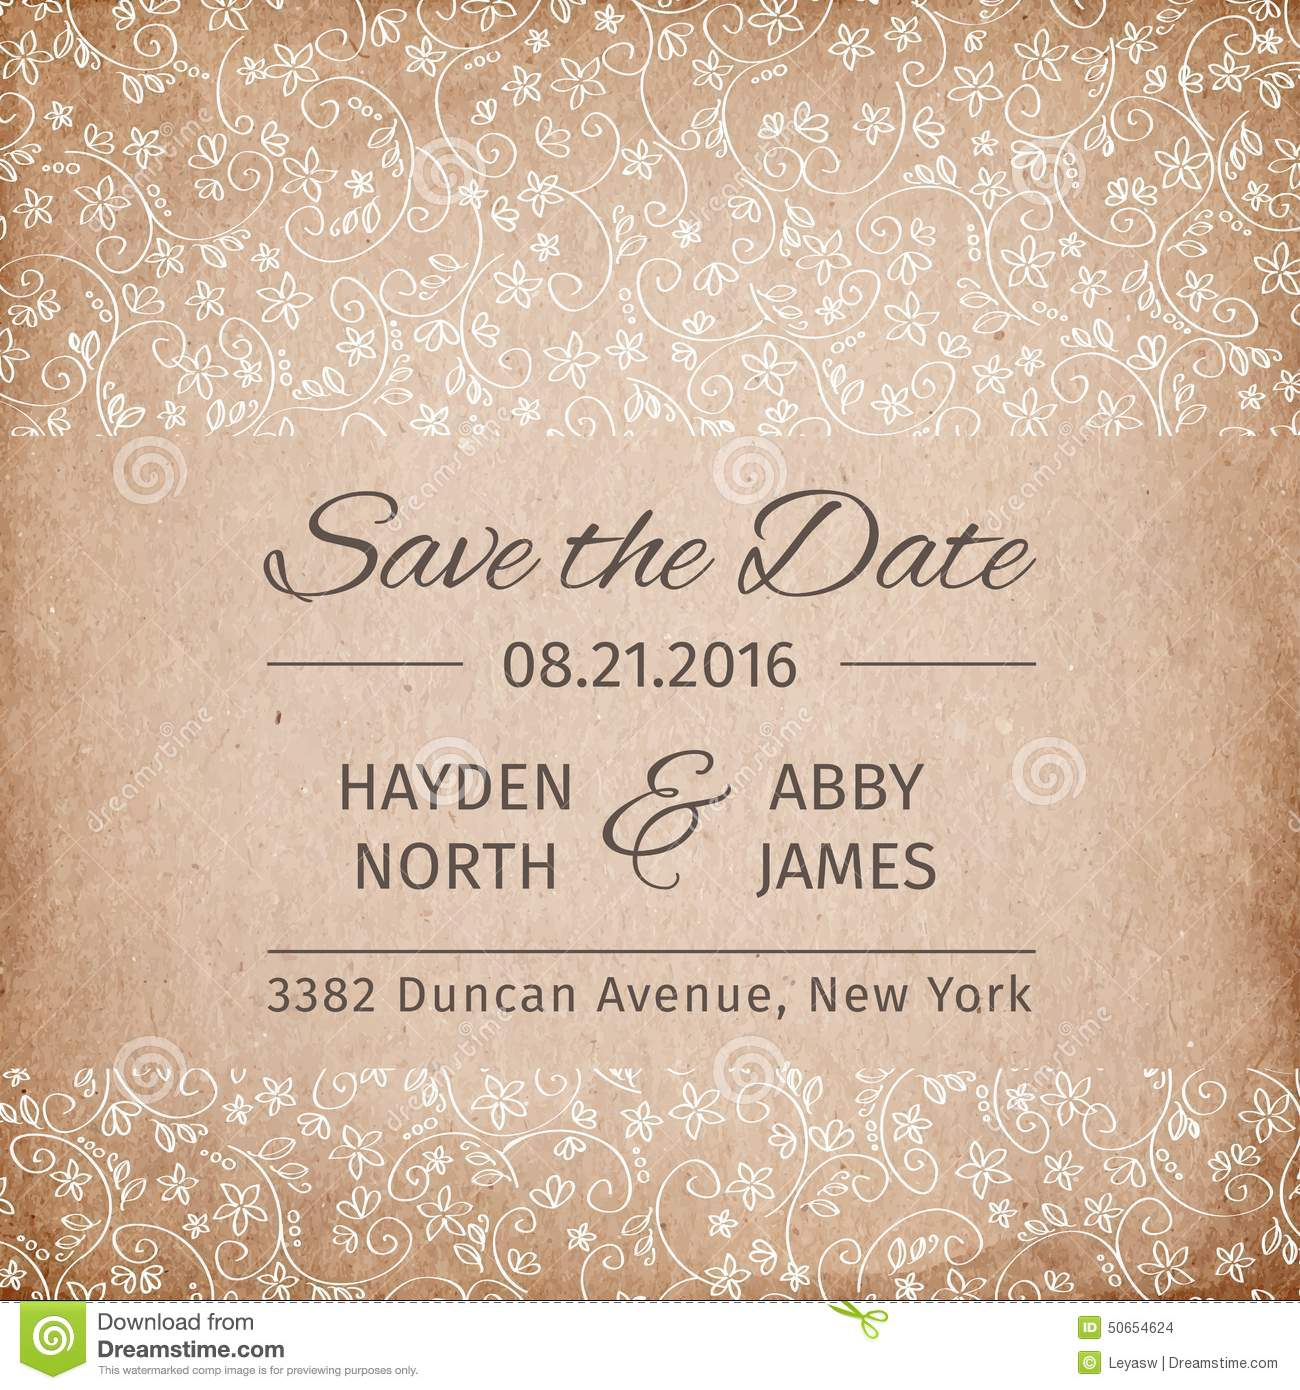 Save the date wedding invitation template vintage paper for Free vintage save the date templates